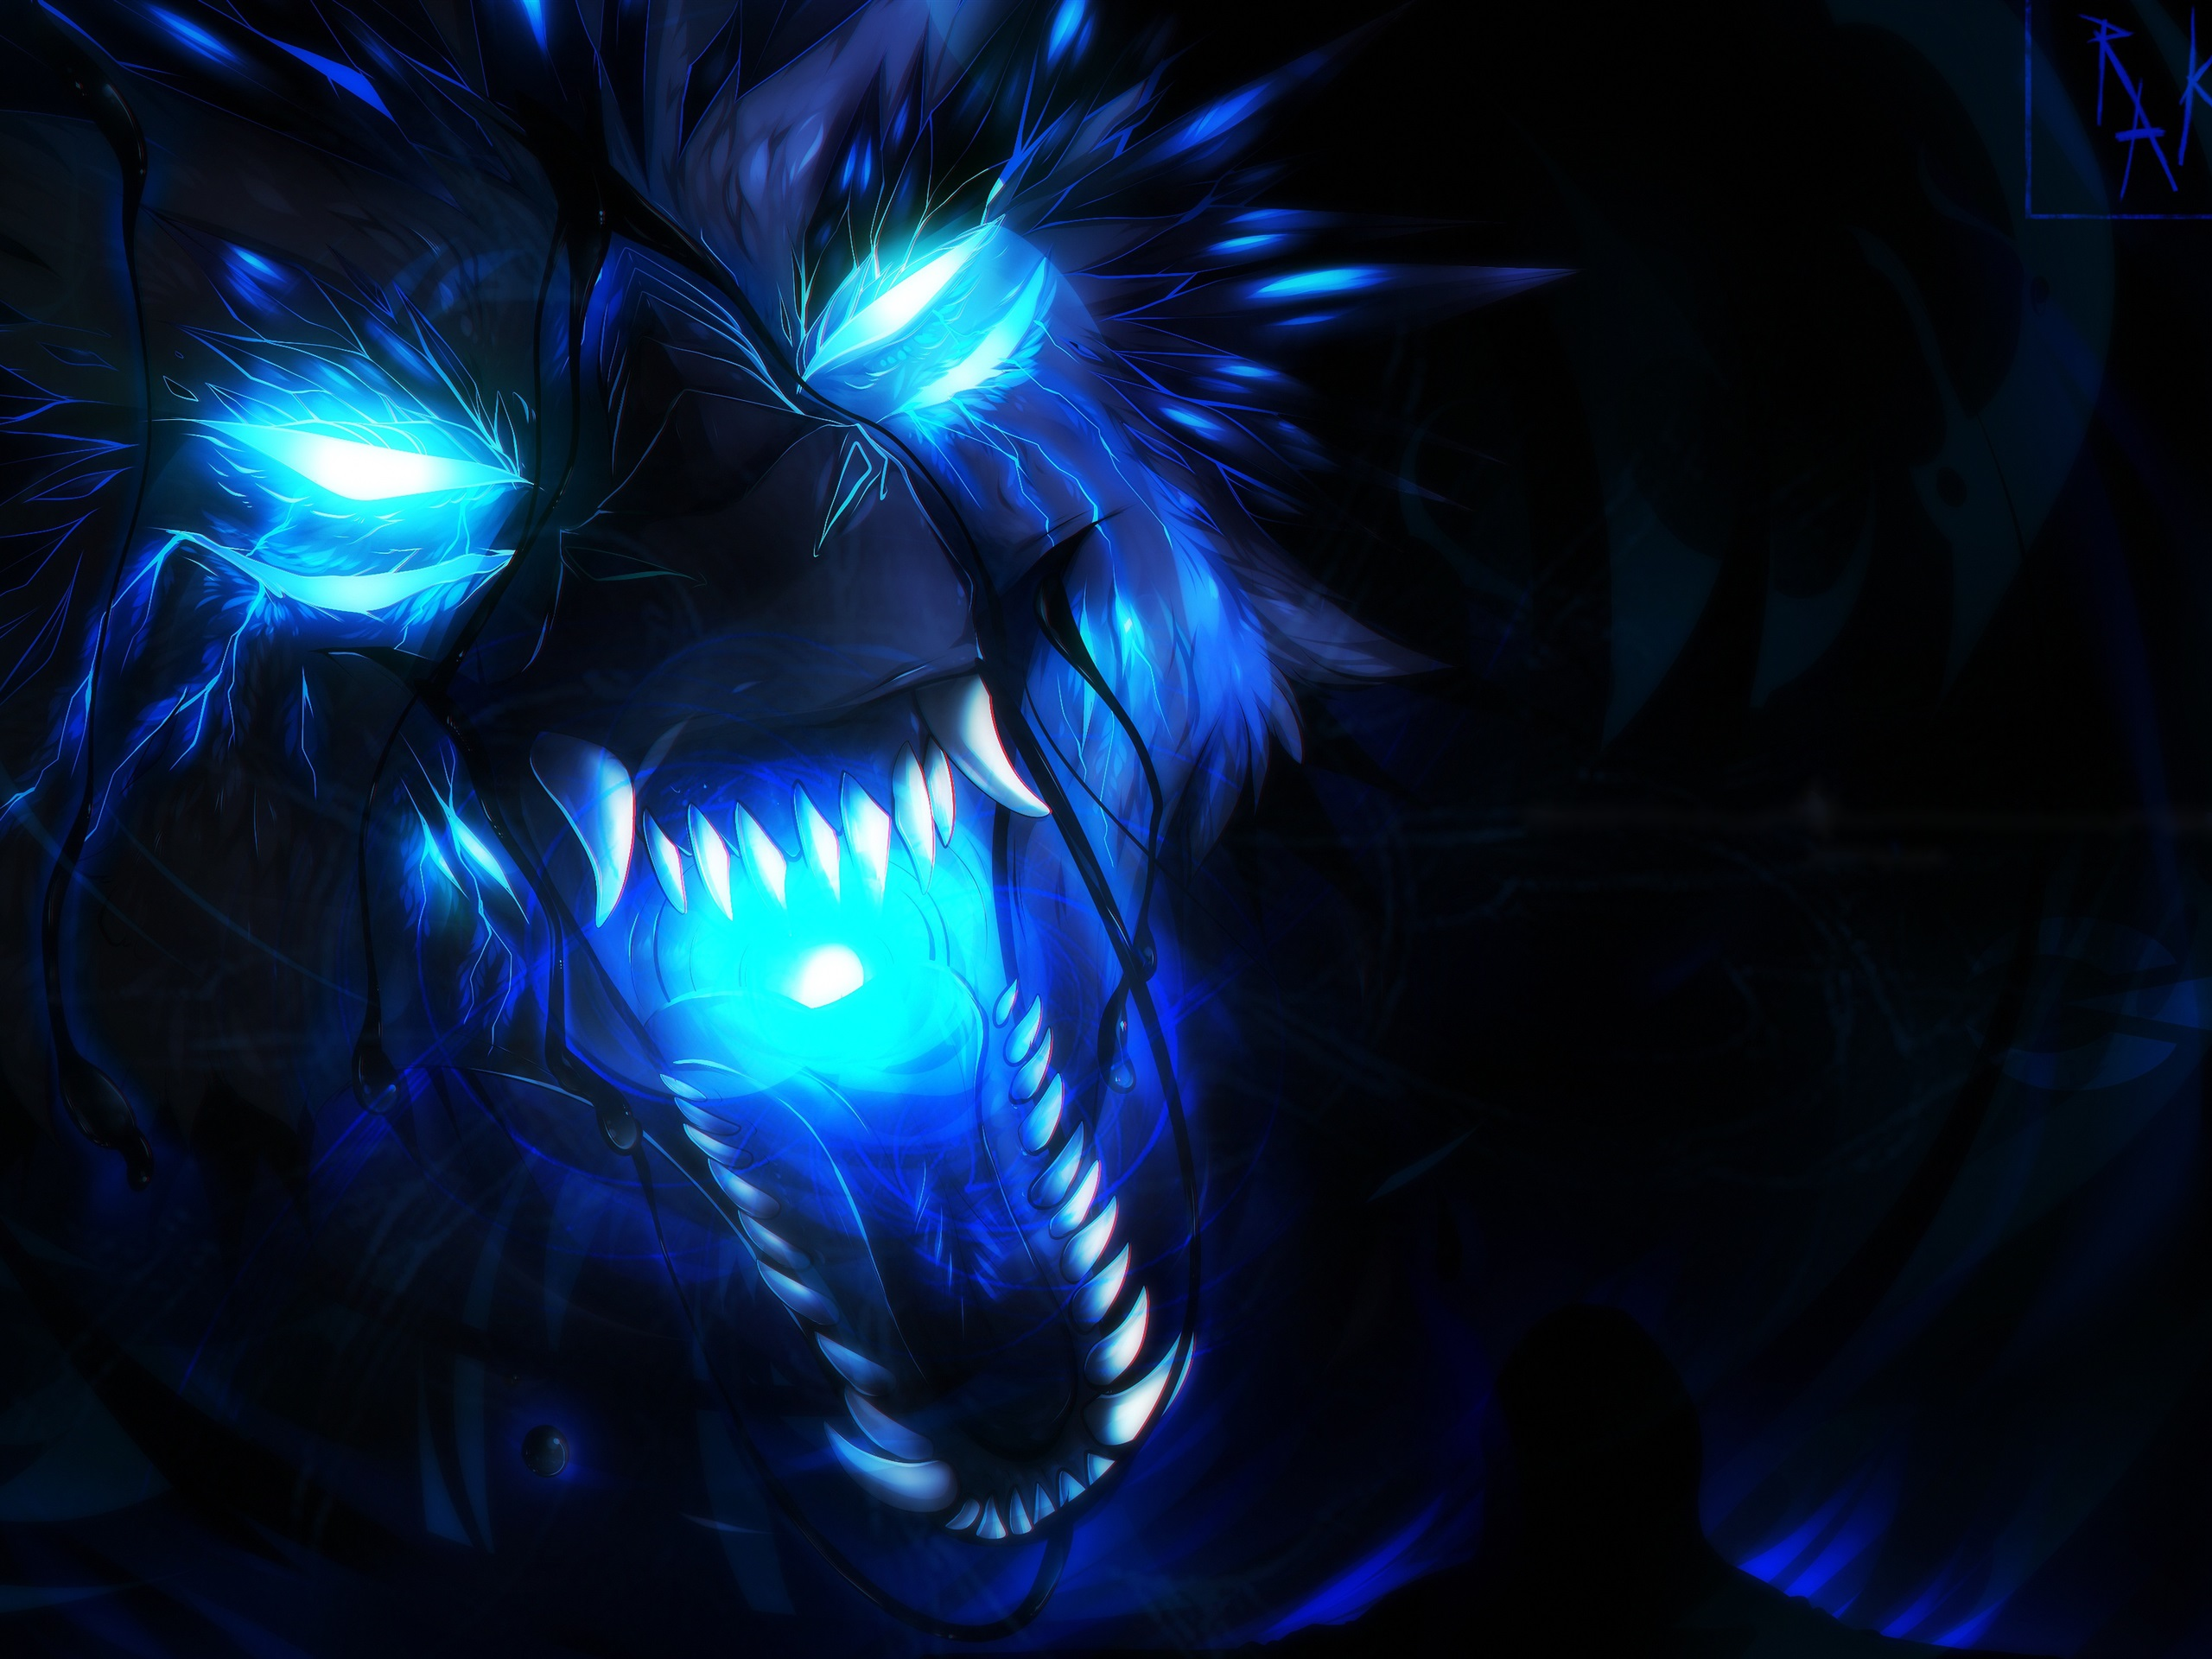 Blue Wolf 2560x1920 Wallpaper Teahub Io